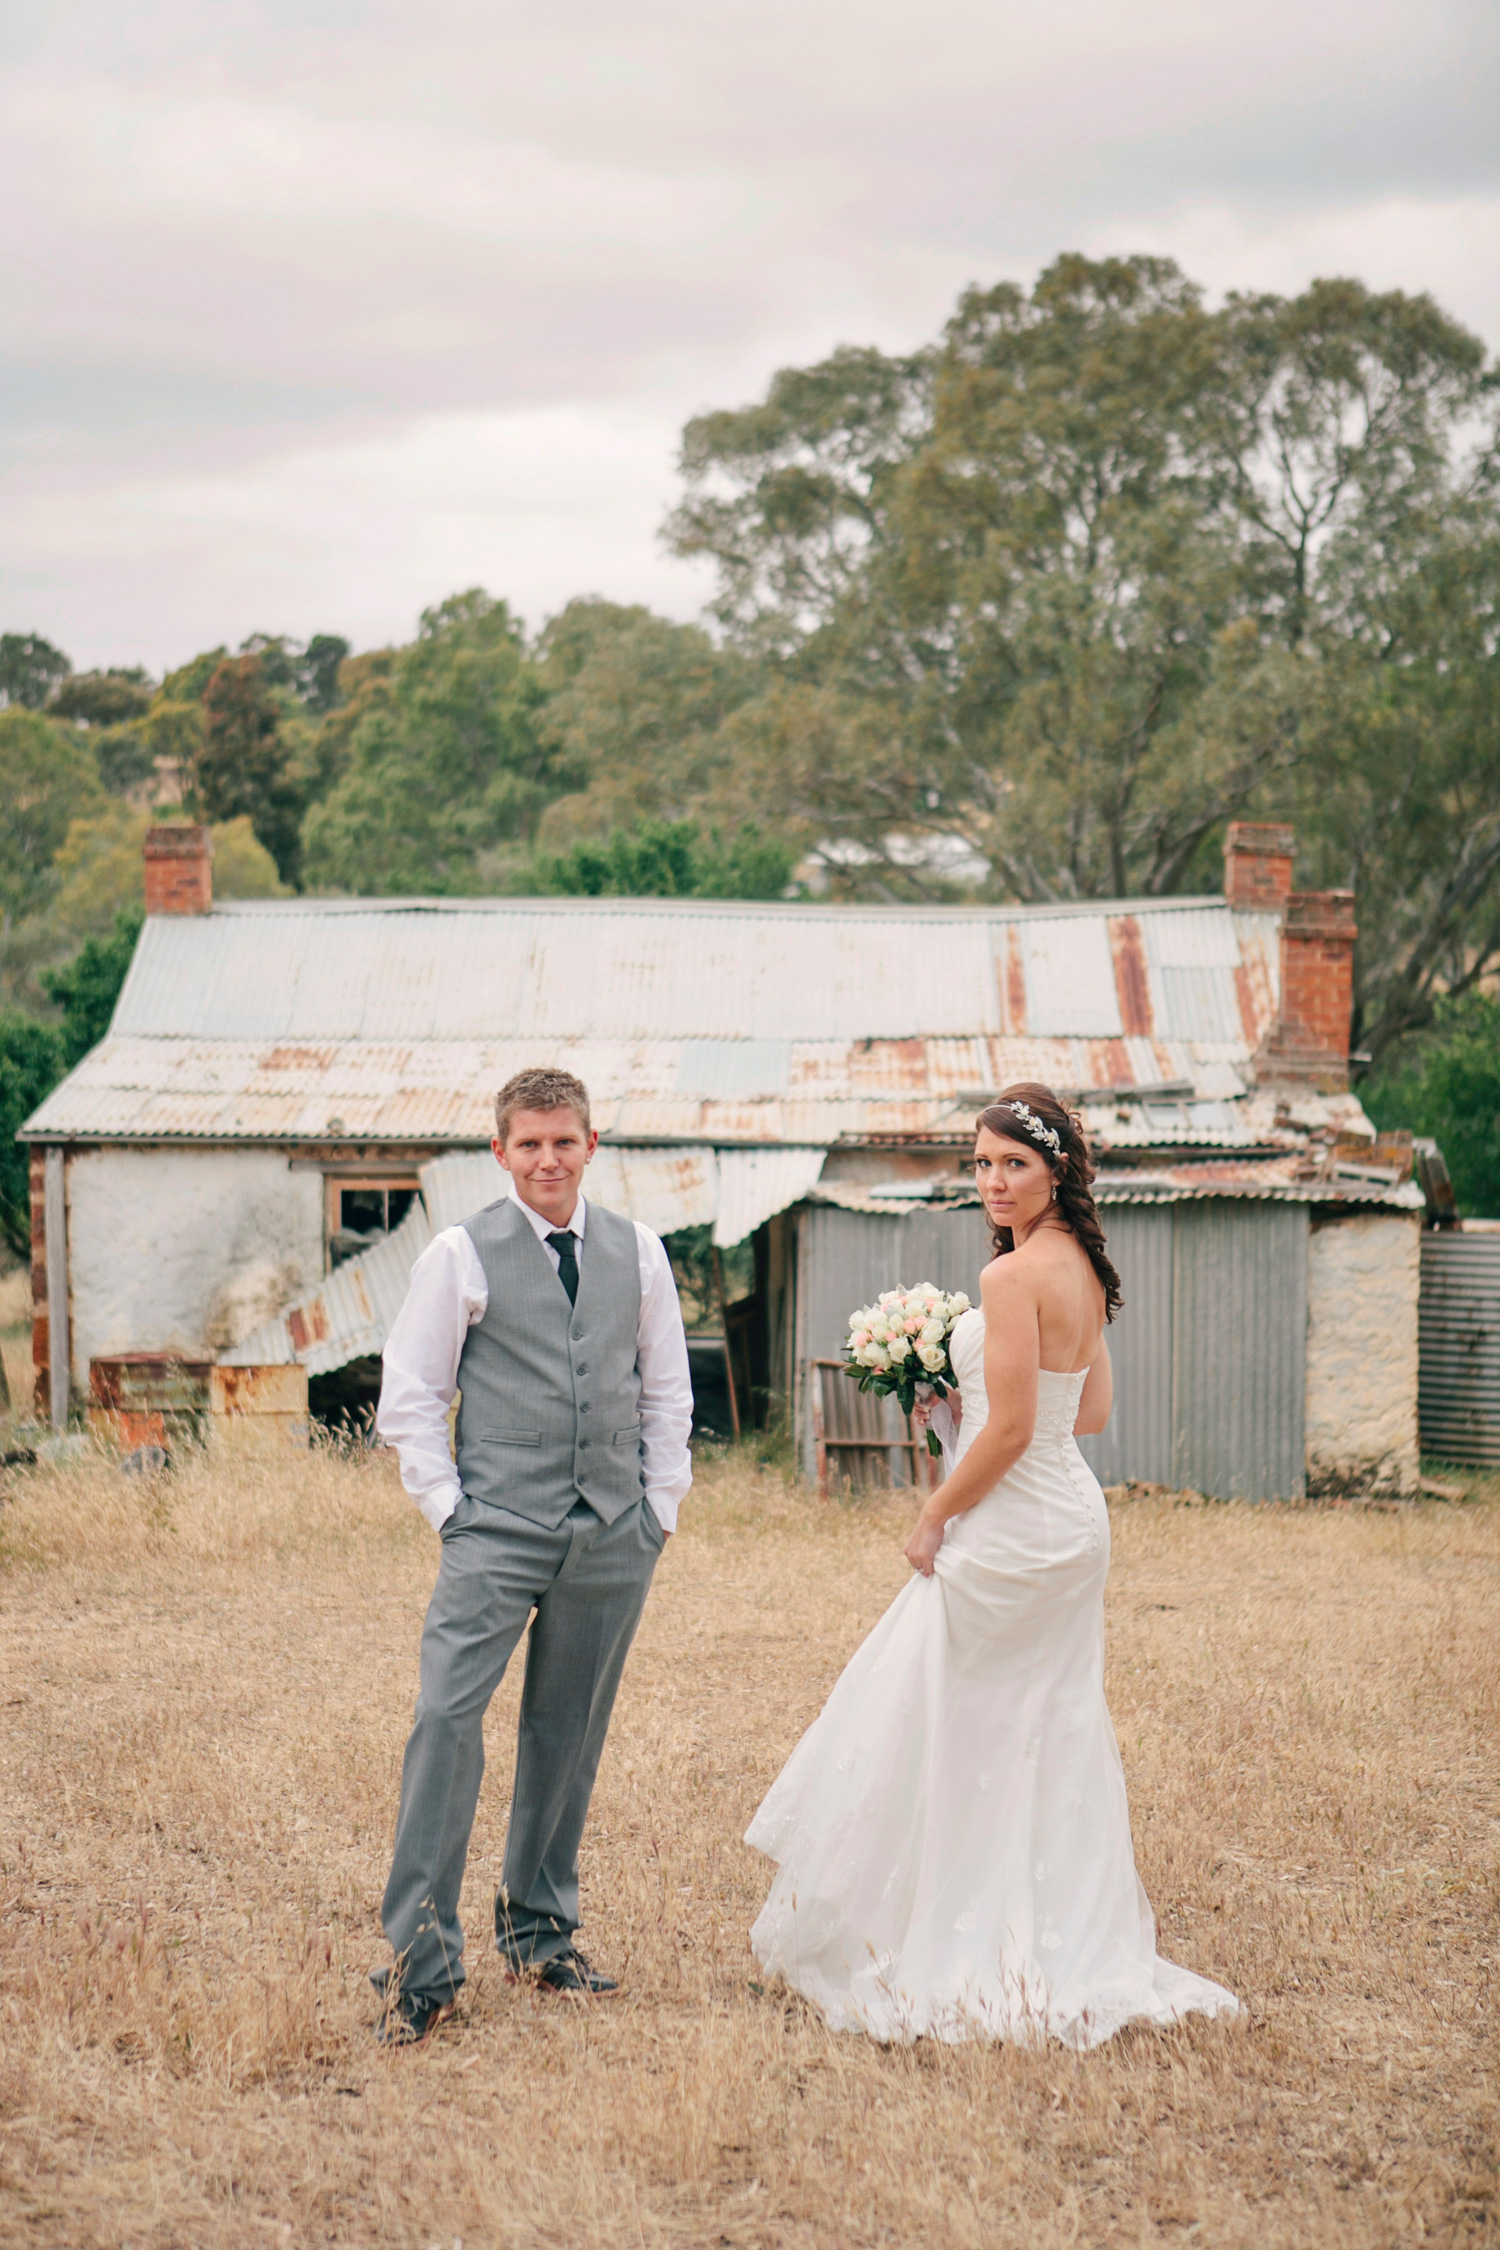 Jane_Chris_Vintage-Rustic-Wedding_061